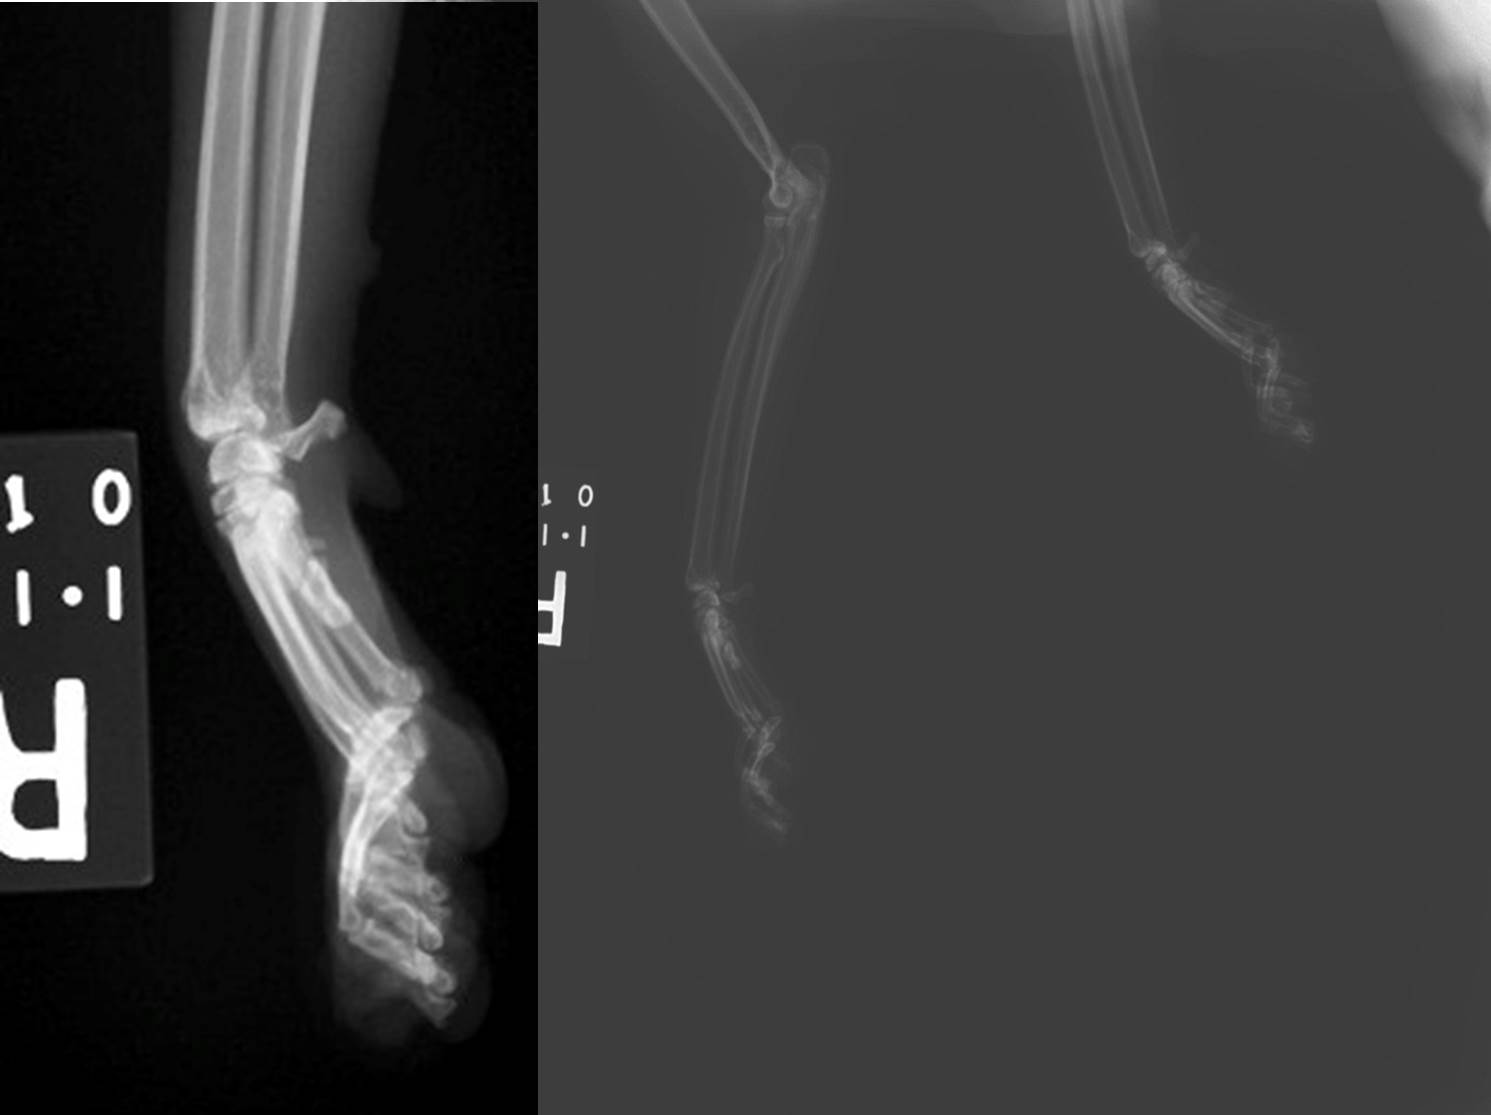 Radiographic Approach to Bone Imaging - MSPCA-Angell